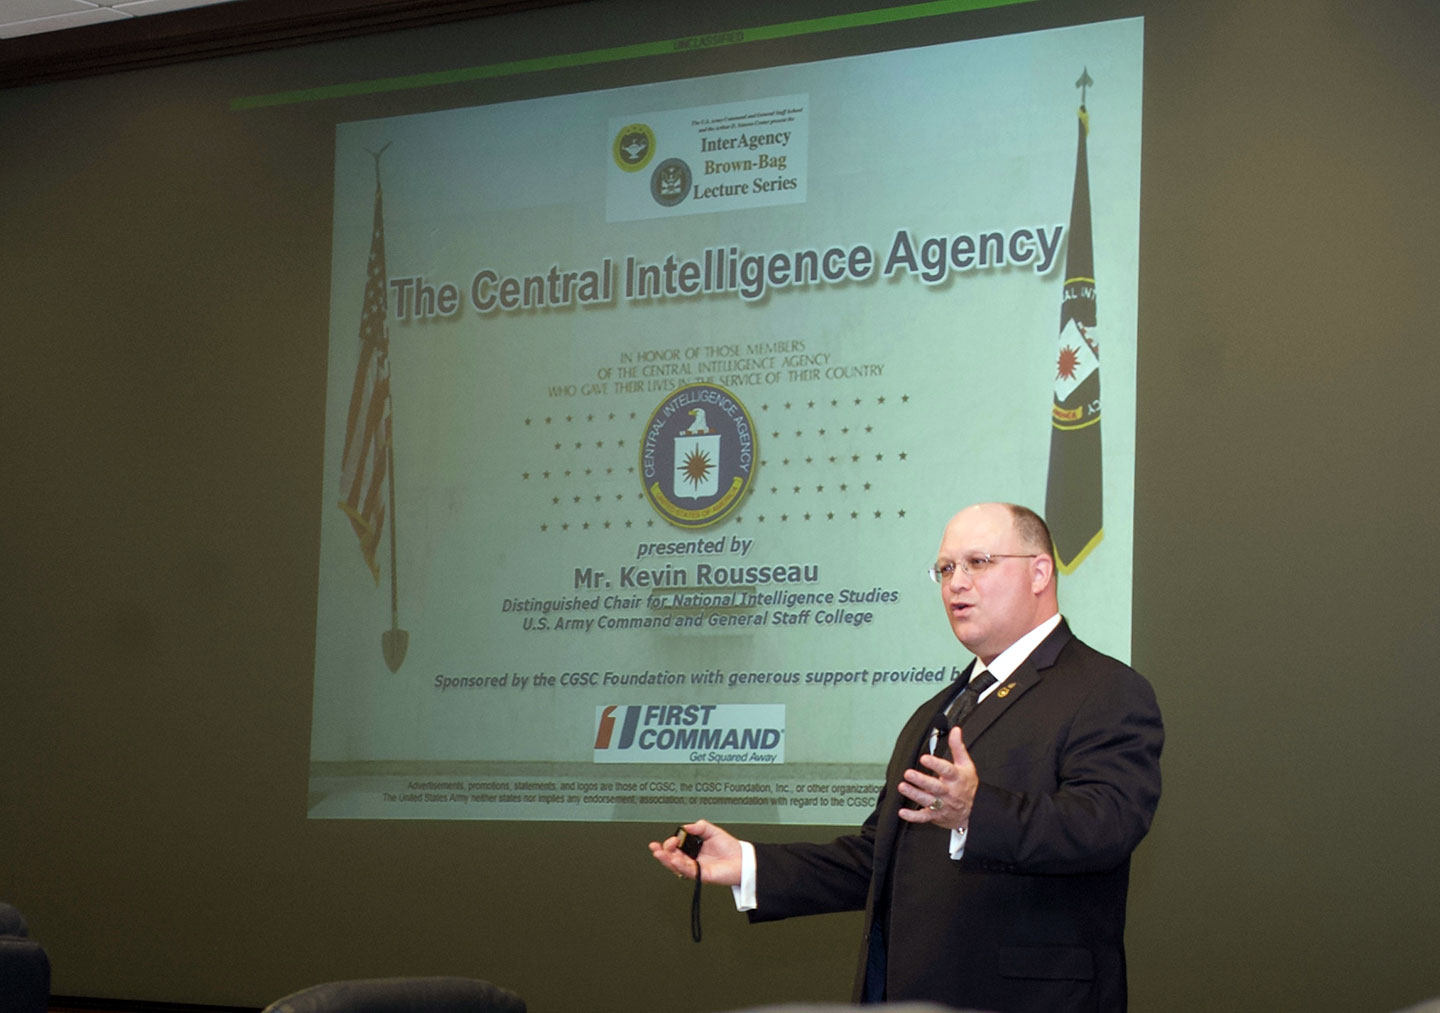 Photo of Kevin Rousseau, the CGSC Distinguished Chair for National Intelligence Studies and a member of the Central Intelligence Agency (CIA), delivering his presentation on the CIA in the latest the InterAgency Brown-Bag Lecture on April 3, in the in the Arnold Conference Room of the Lewis and Clark Center on Fort Leavenworth.